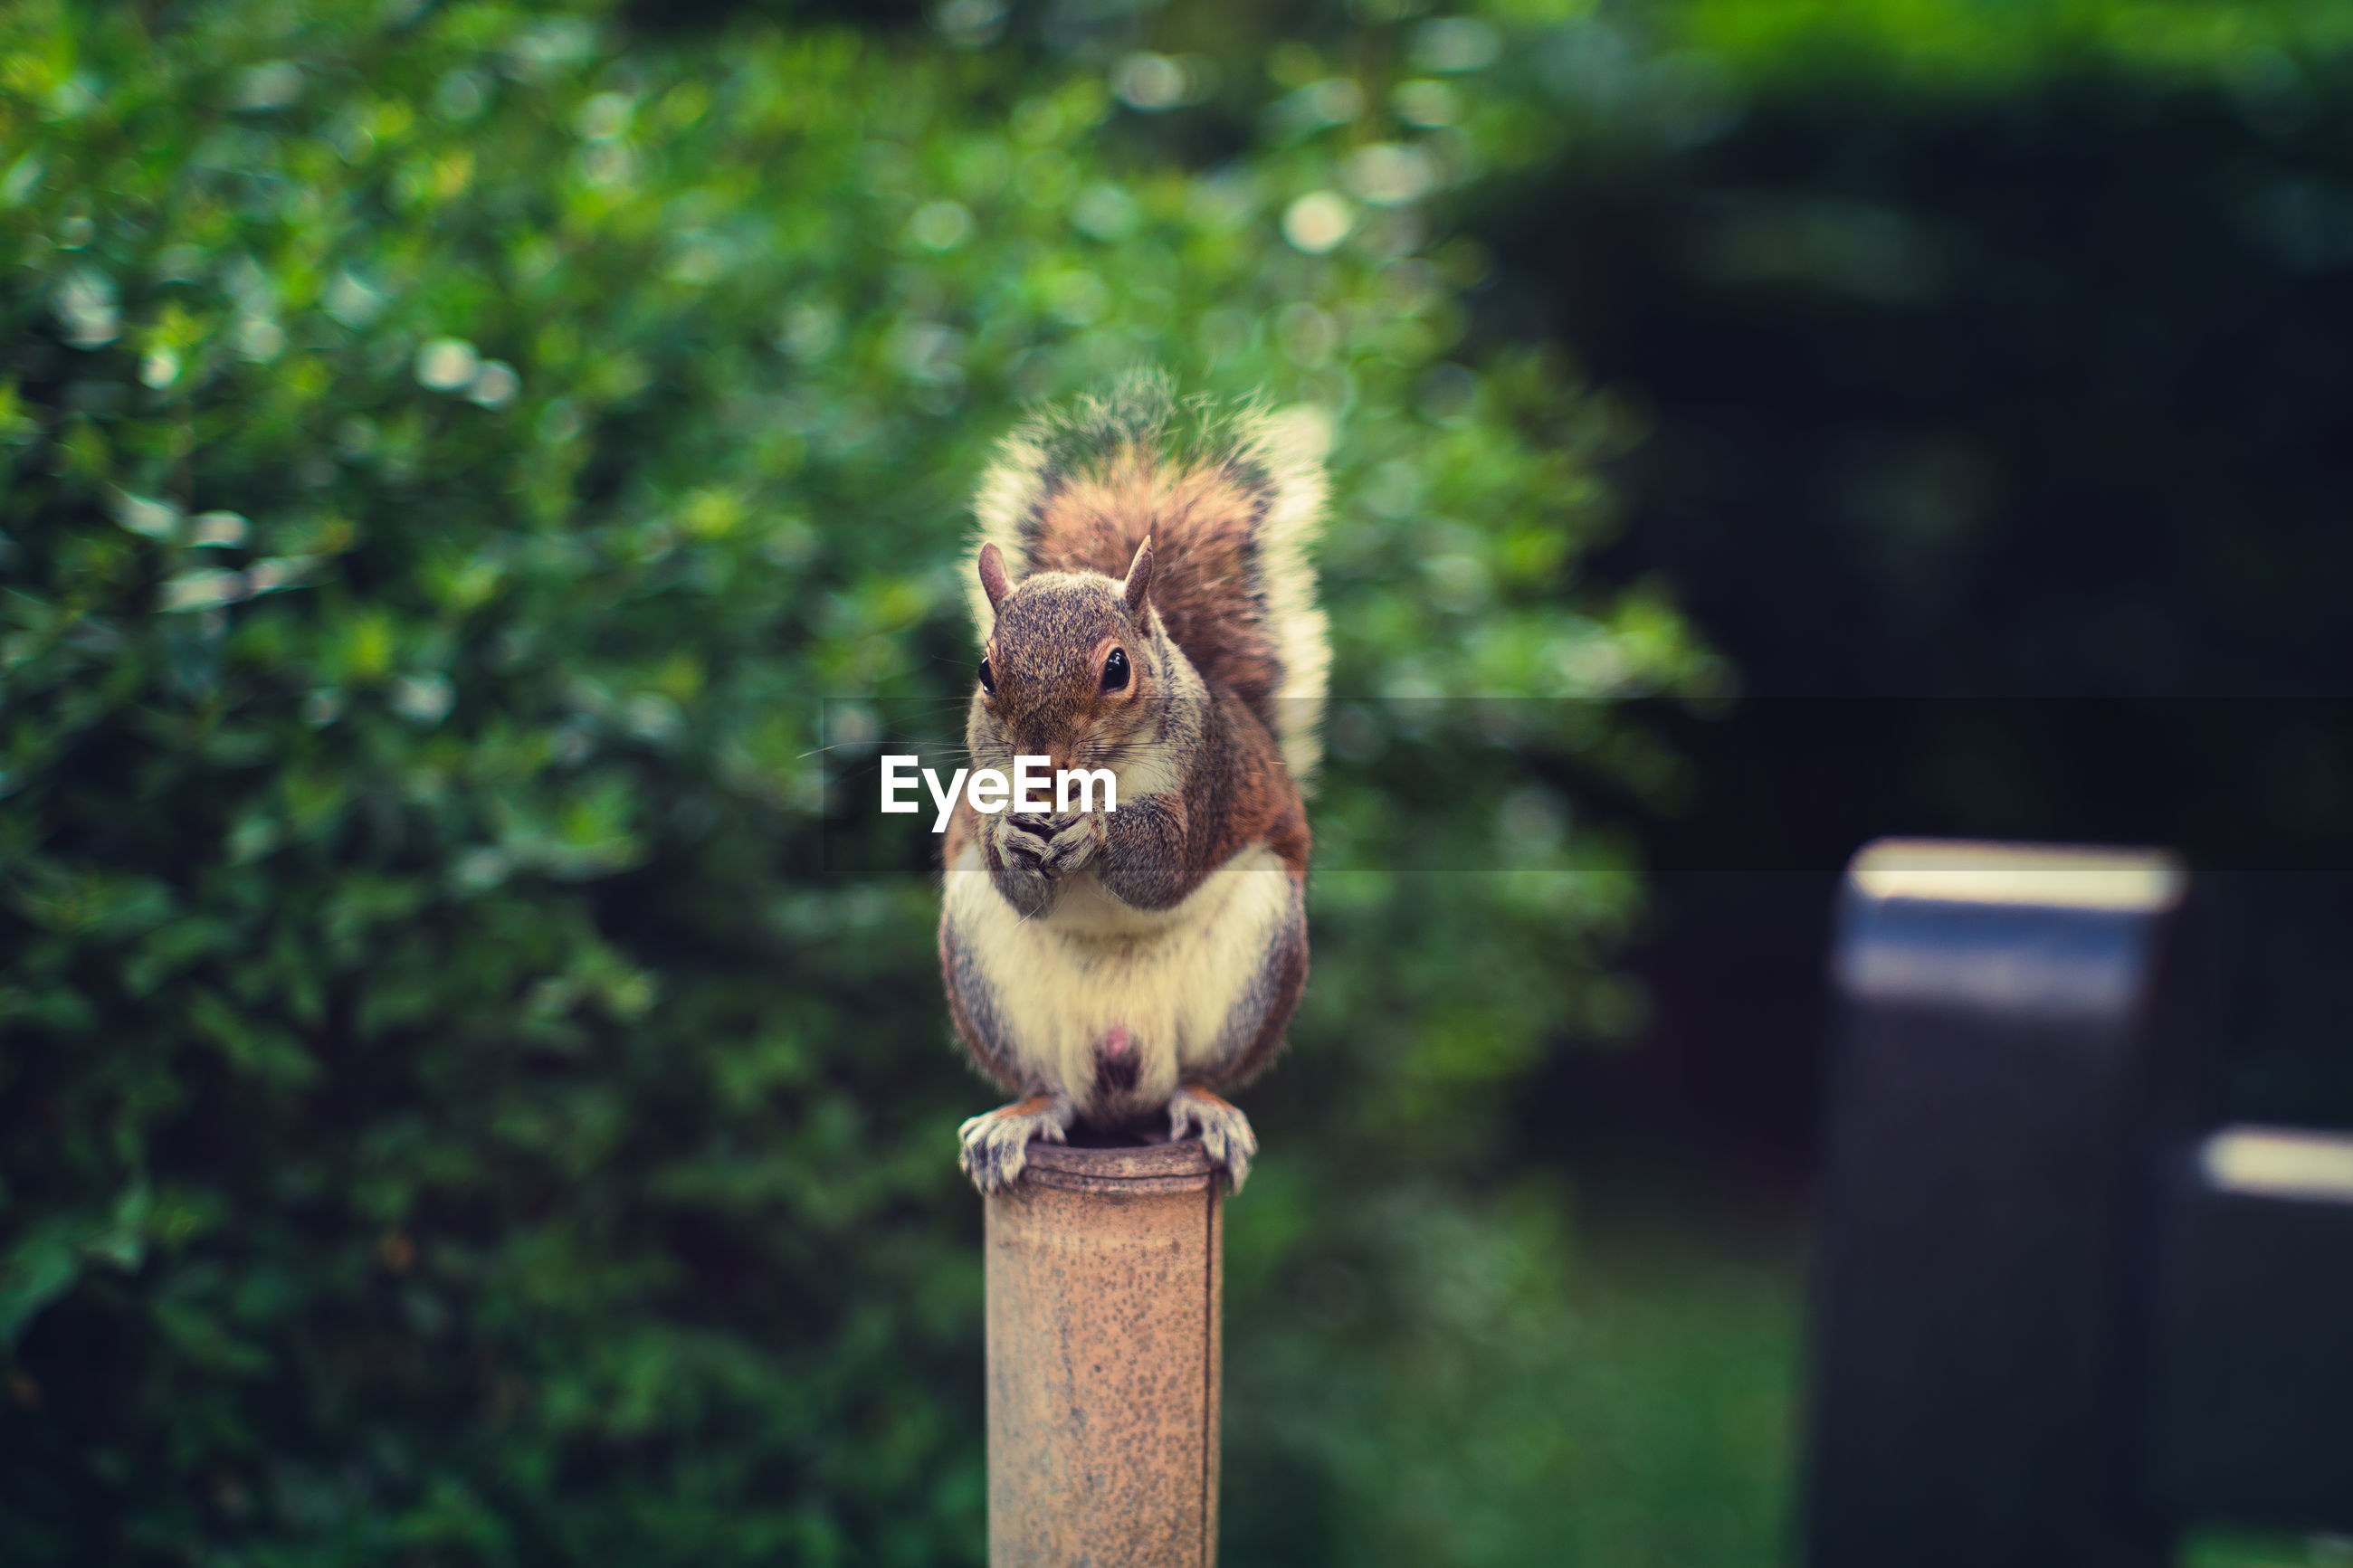 Squirrel sitting on pole against trees